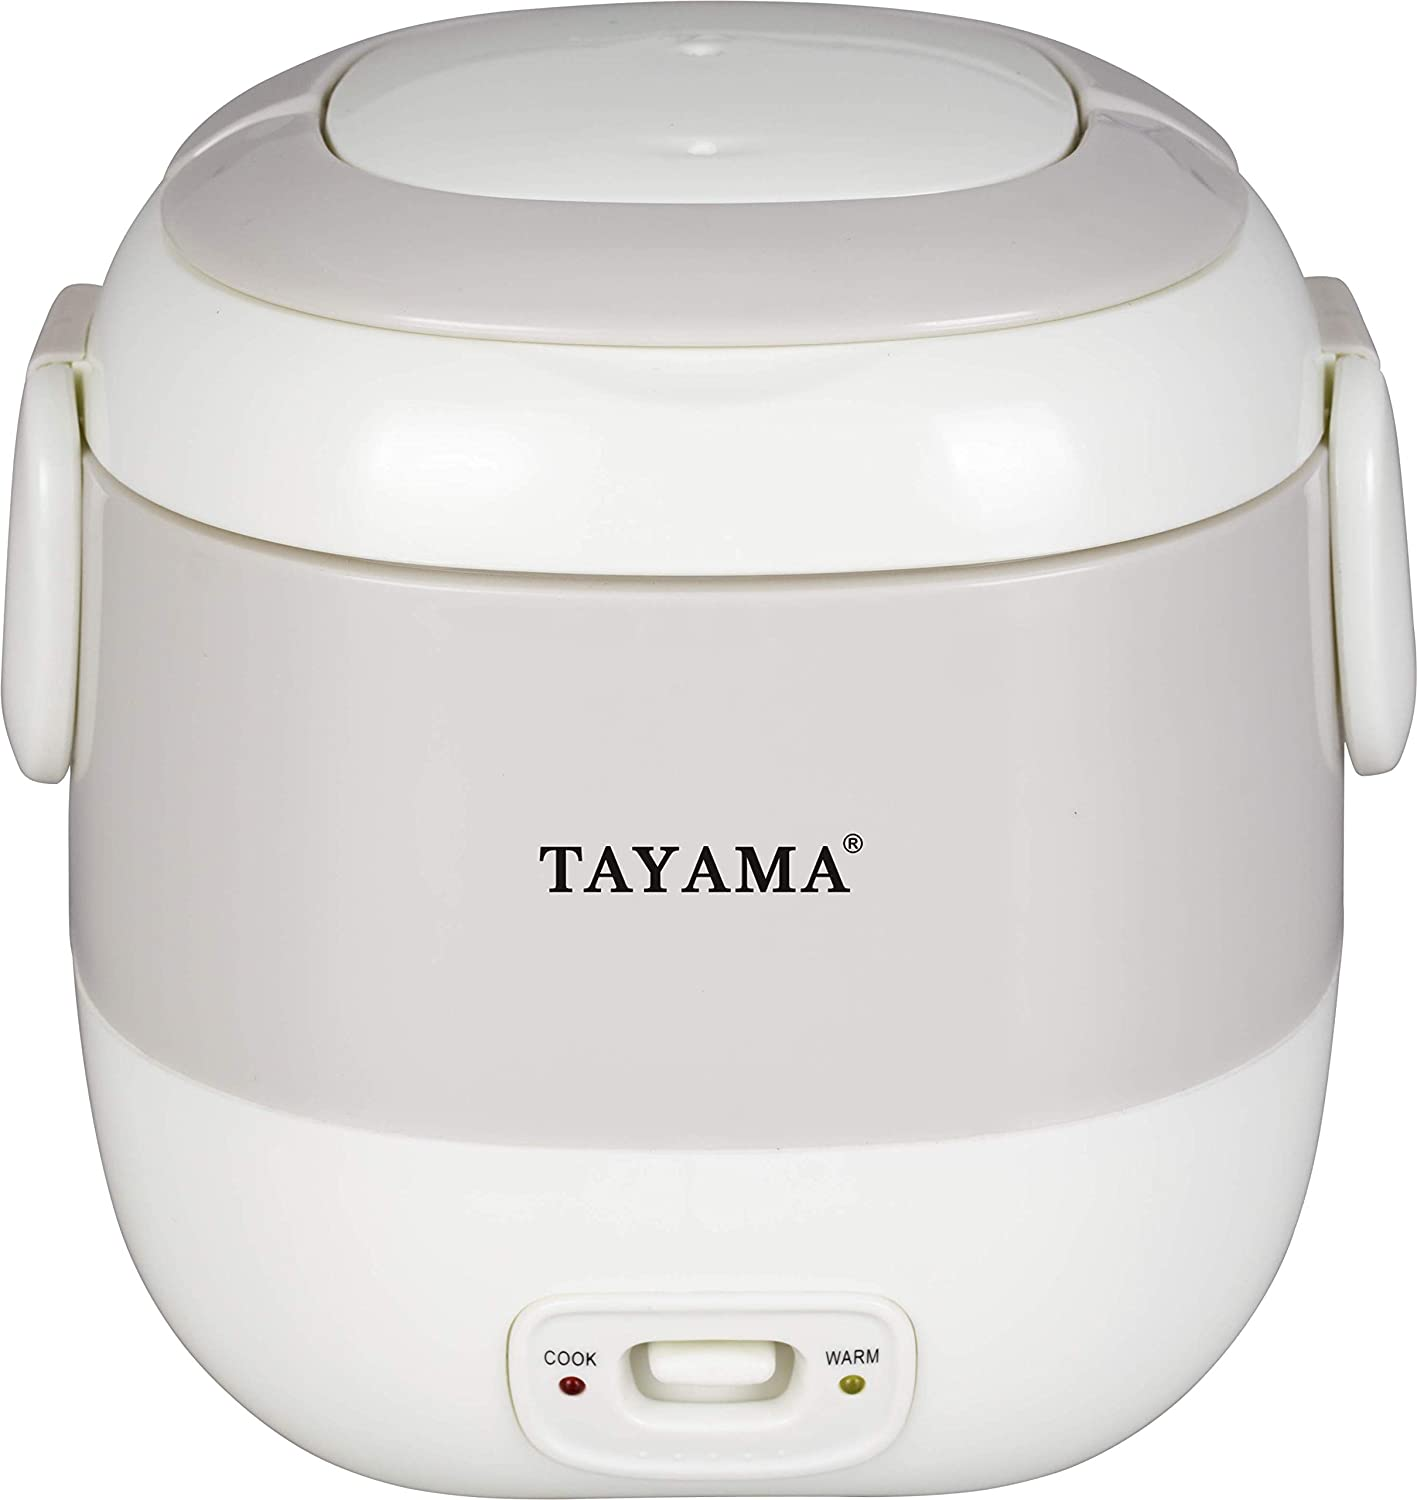 Tayama 1.5 Cup Portable Mini Rice Cooker, White (TMRC-03R)